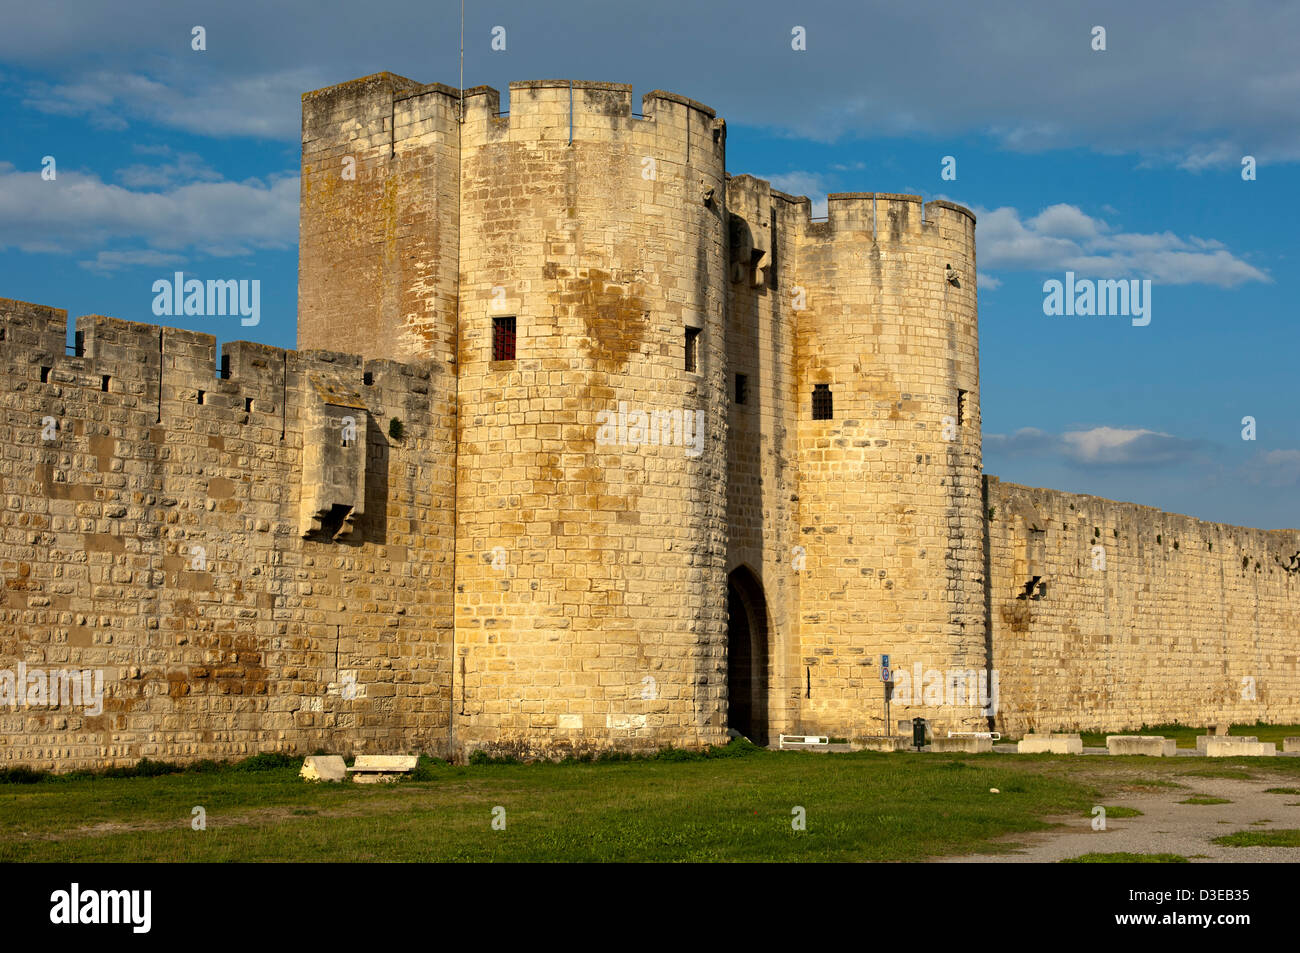 Exterior of the impressive town wall with a town gate, Aigues-Mortes, region Languedoc-Roussillon, France - Stock Image